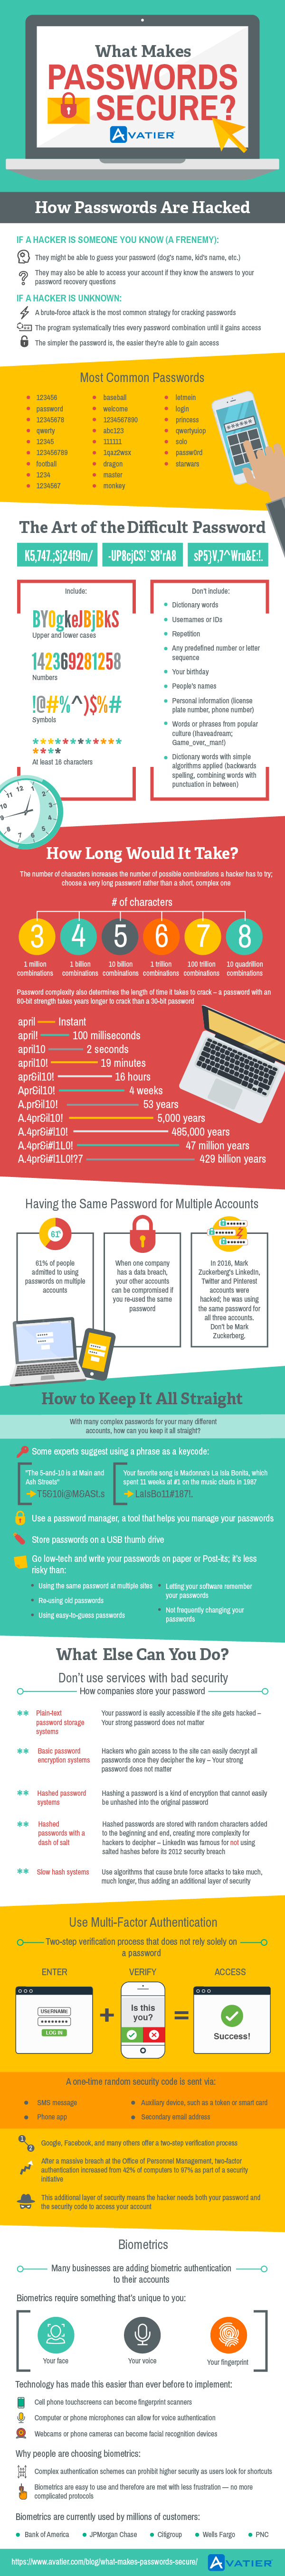 What Makes Passwords Secure